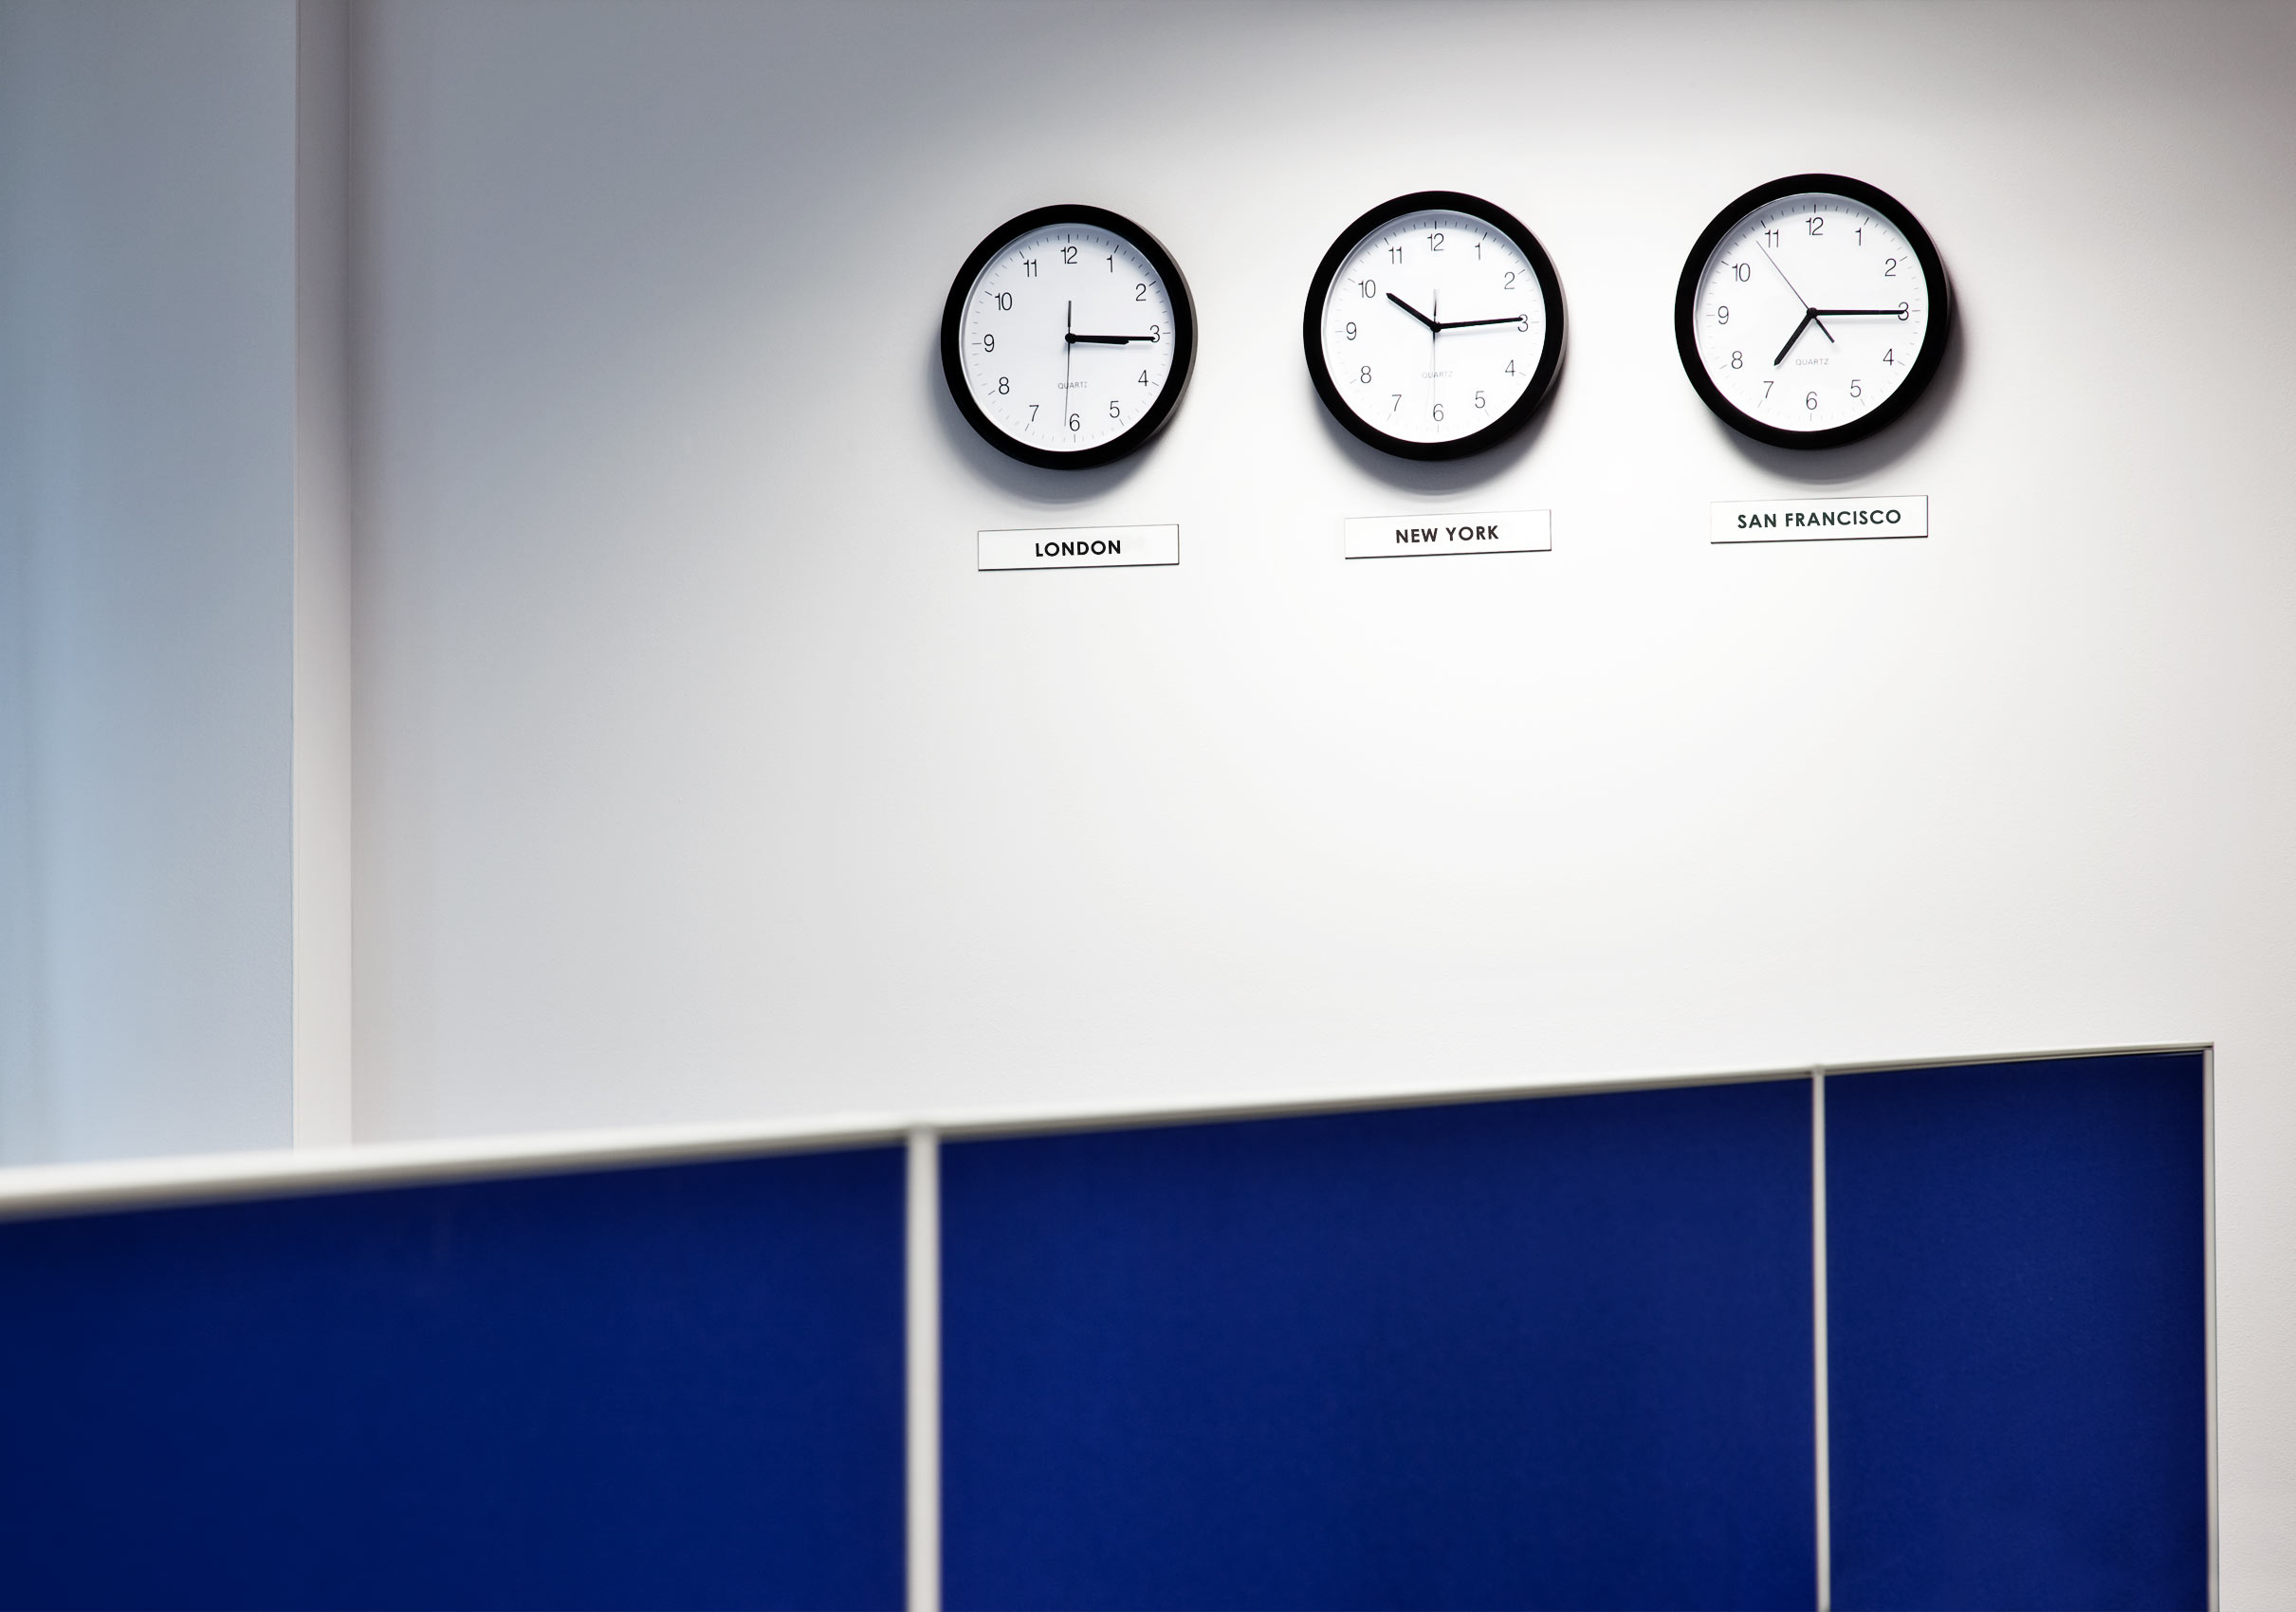 Location photography - 3 clocks showing times in various zones on white wall with blue office divider